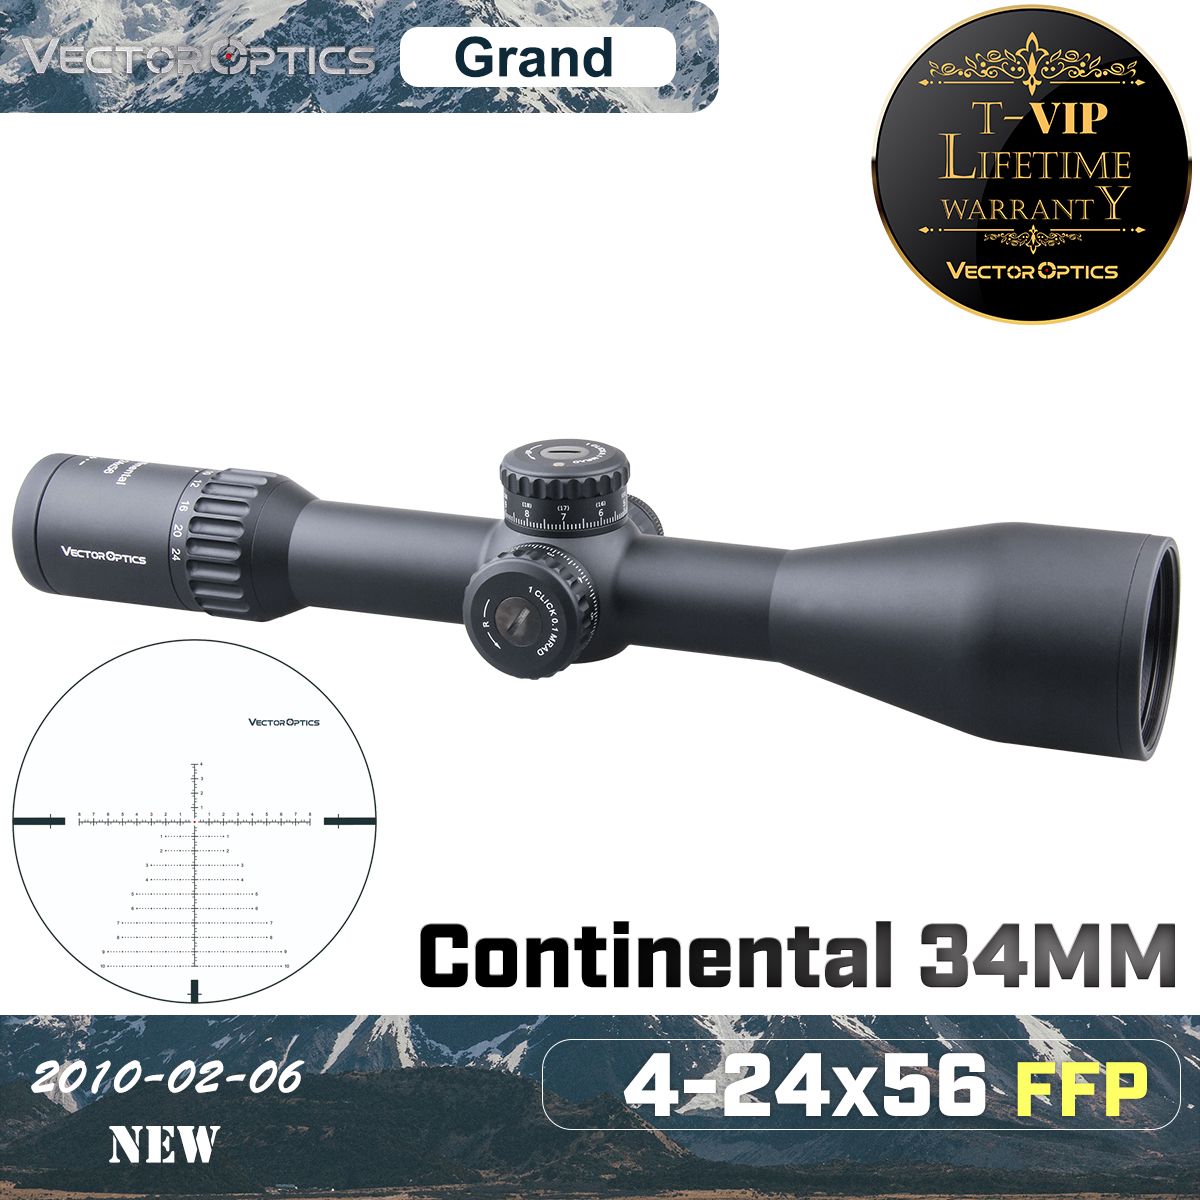 Vector Optics Continental 4-24x56 HD 34mm FFP Hunting Riflescope Tactical Rifle Scope 1/10MIL Long Range Precise Shooting .338